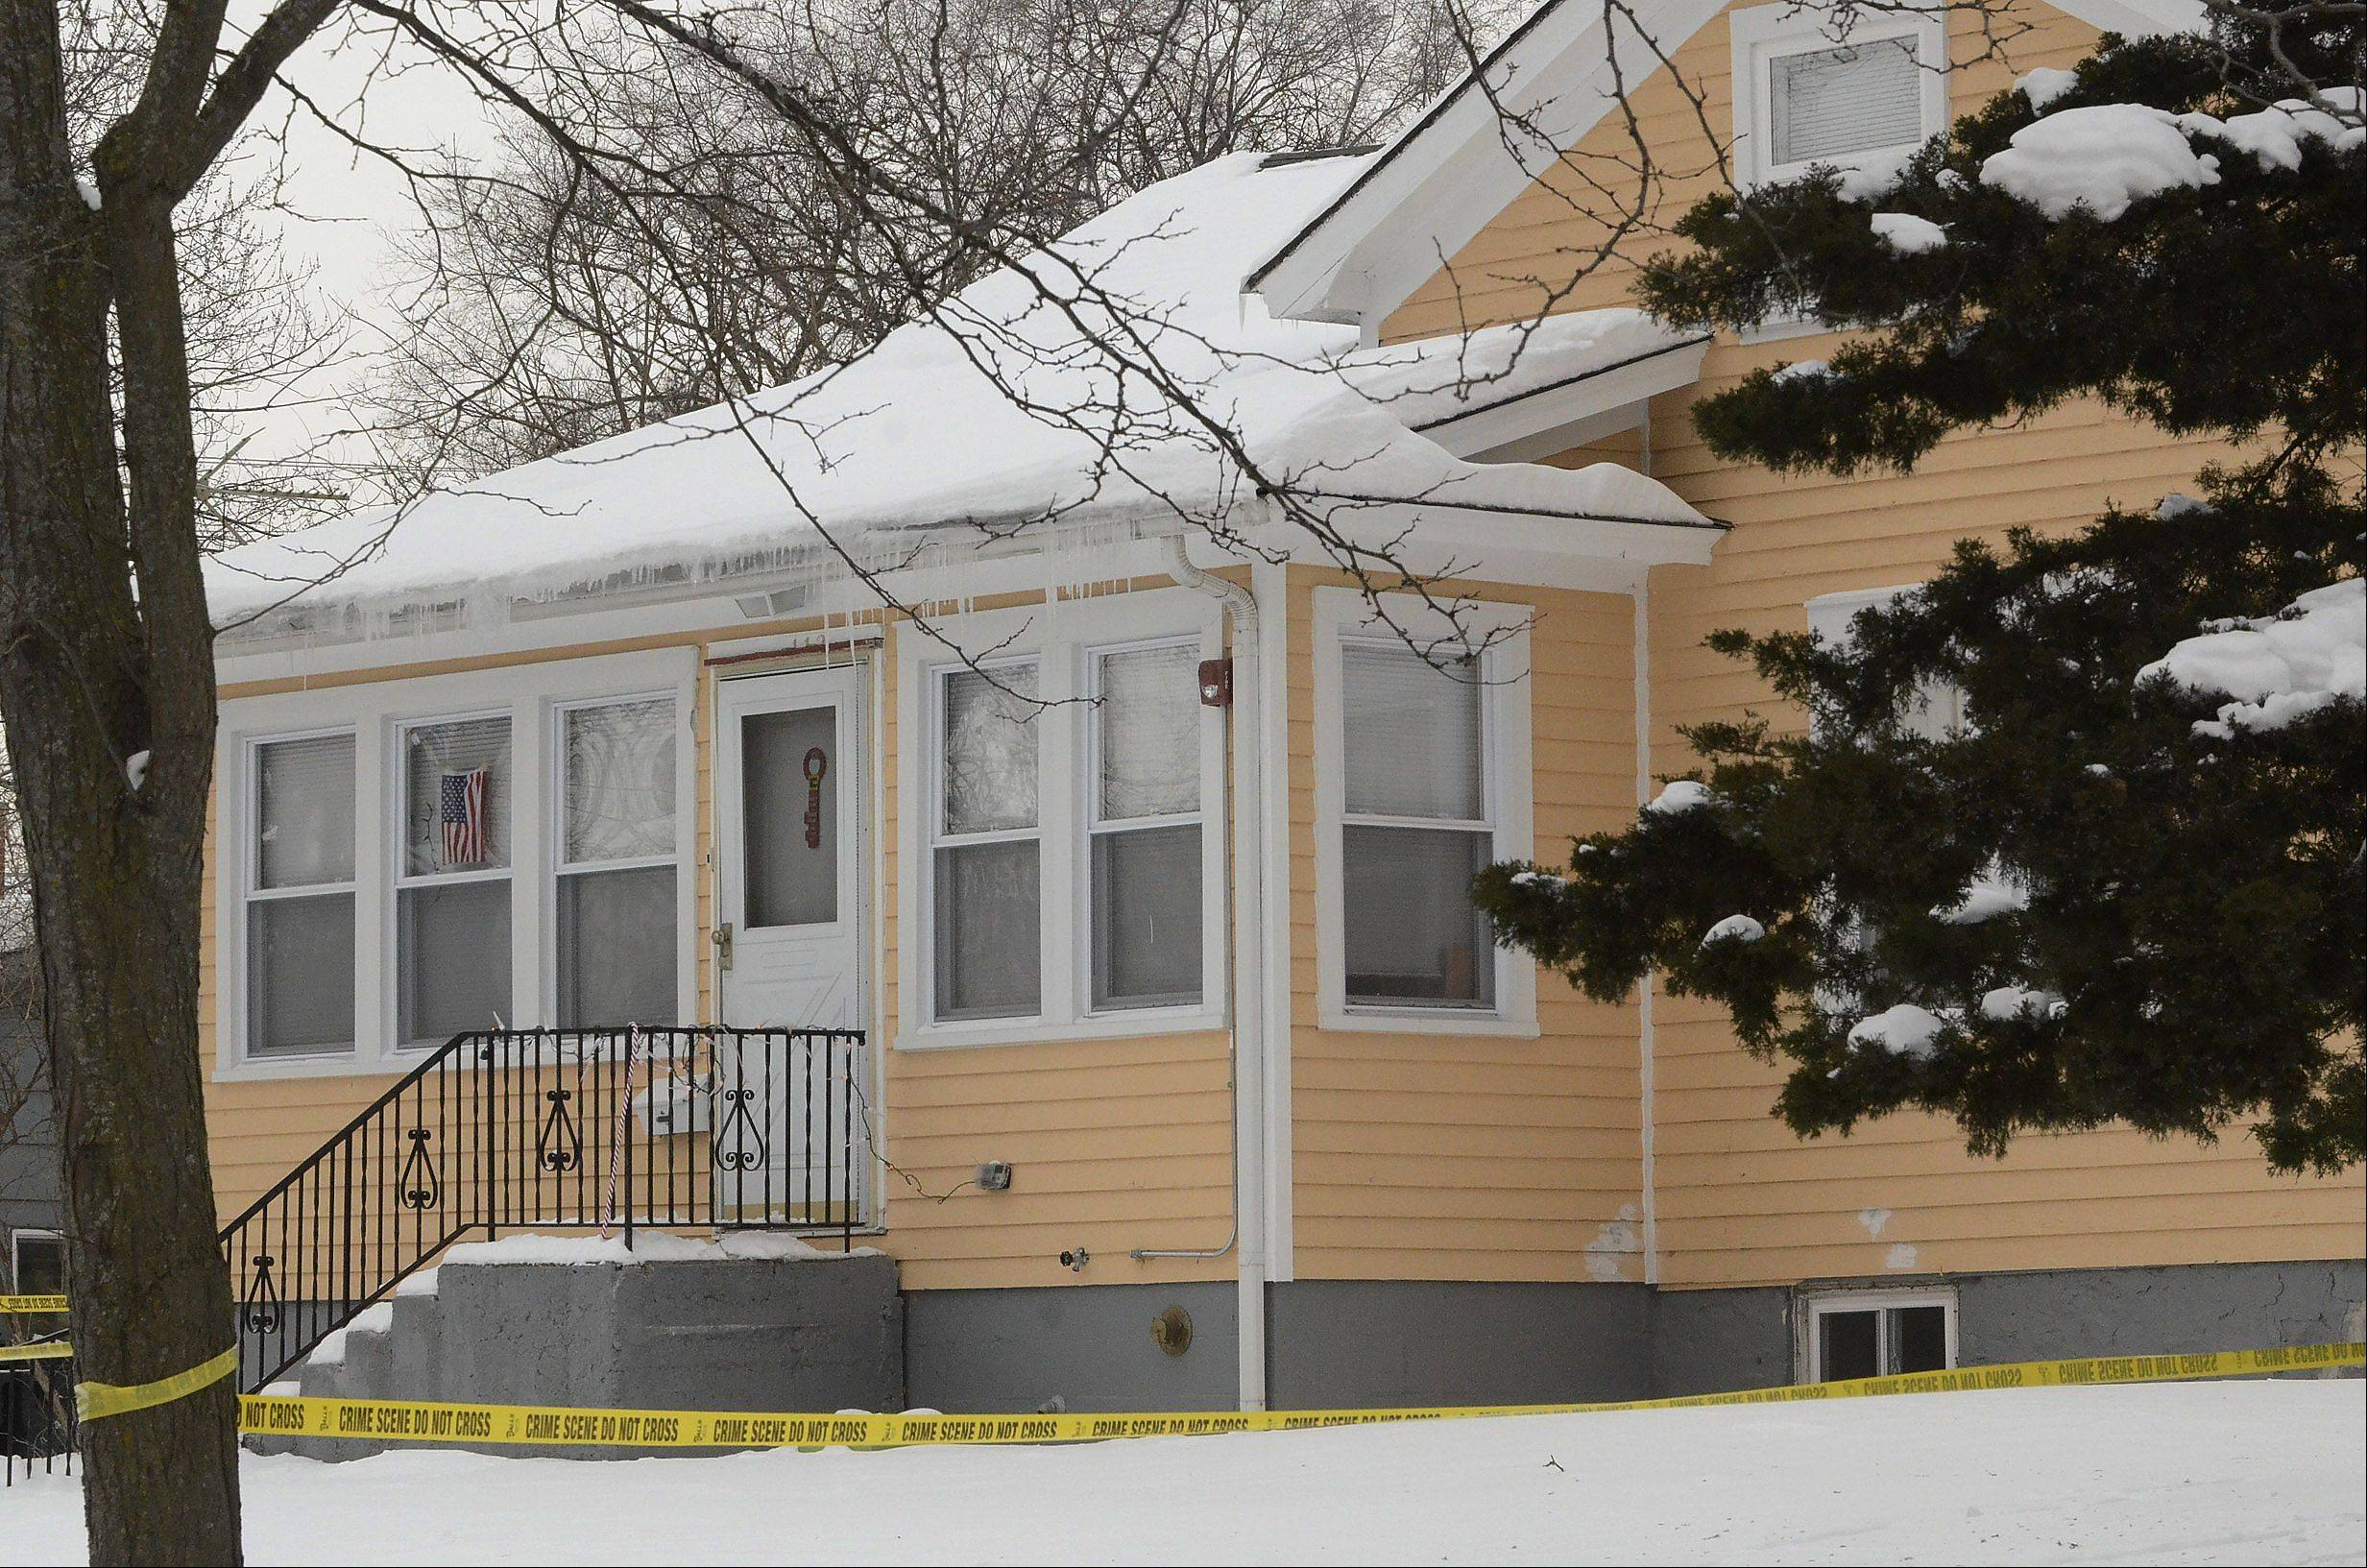 Barrington police and the Cook County Major Case Assistance Team are investigating the death of an 7-month-old child Wednesday at a home on the 100 block of South Hager Avenue in Barrington.